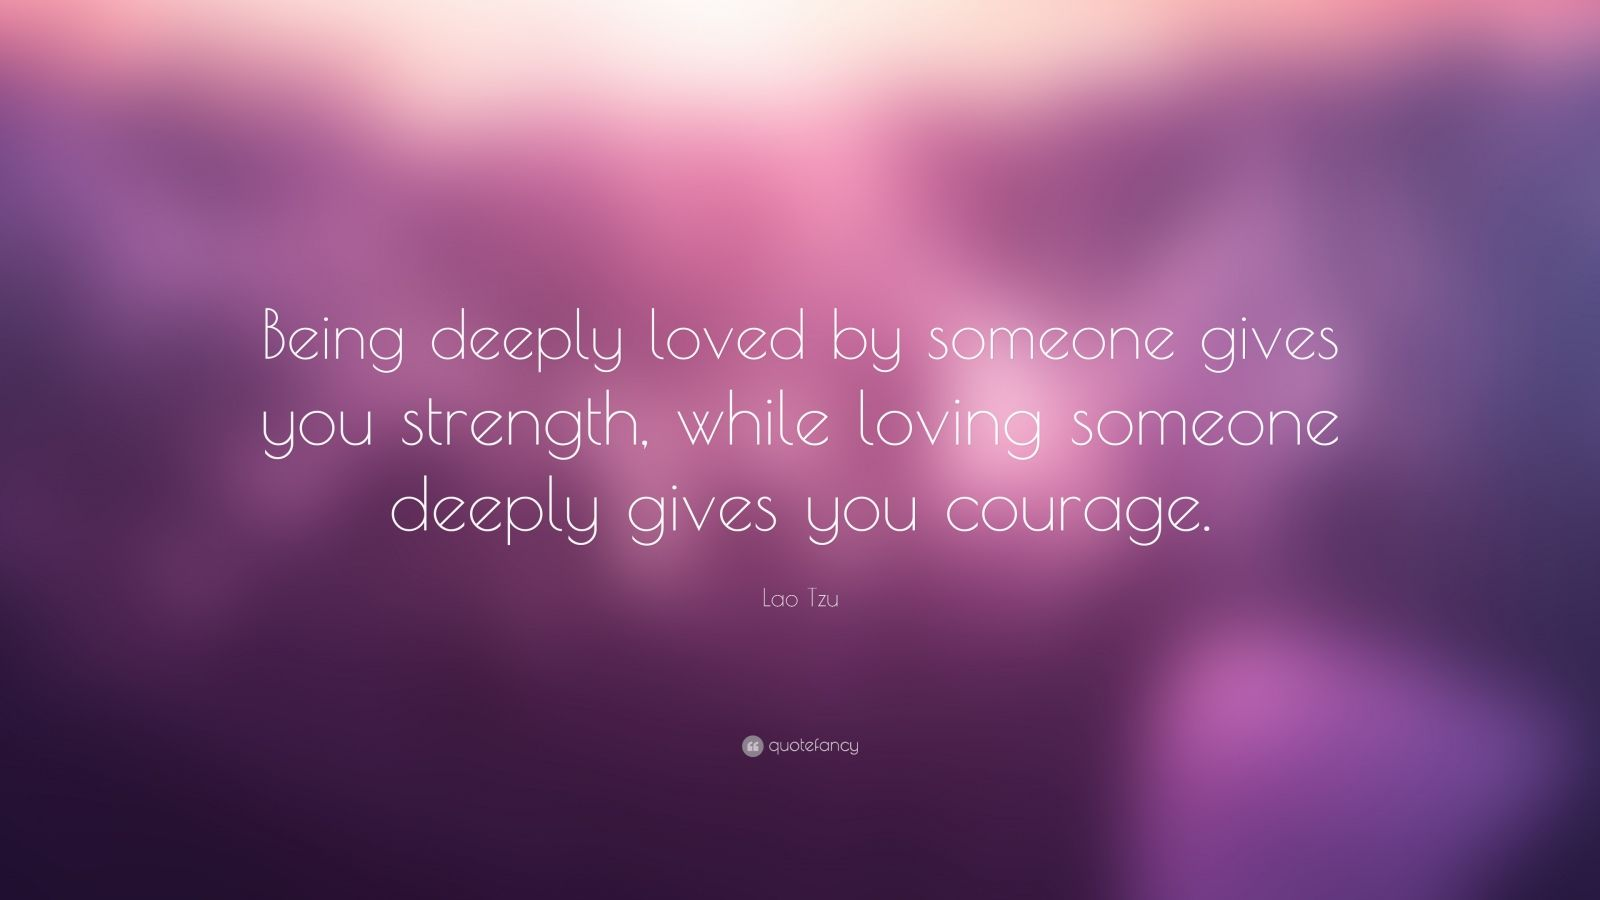 lao tzu quote   u201cbeing deeply loved by someone gives you